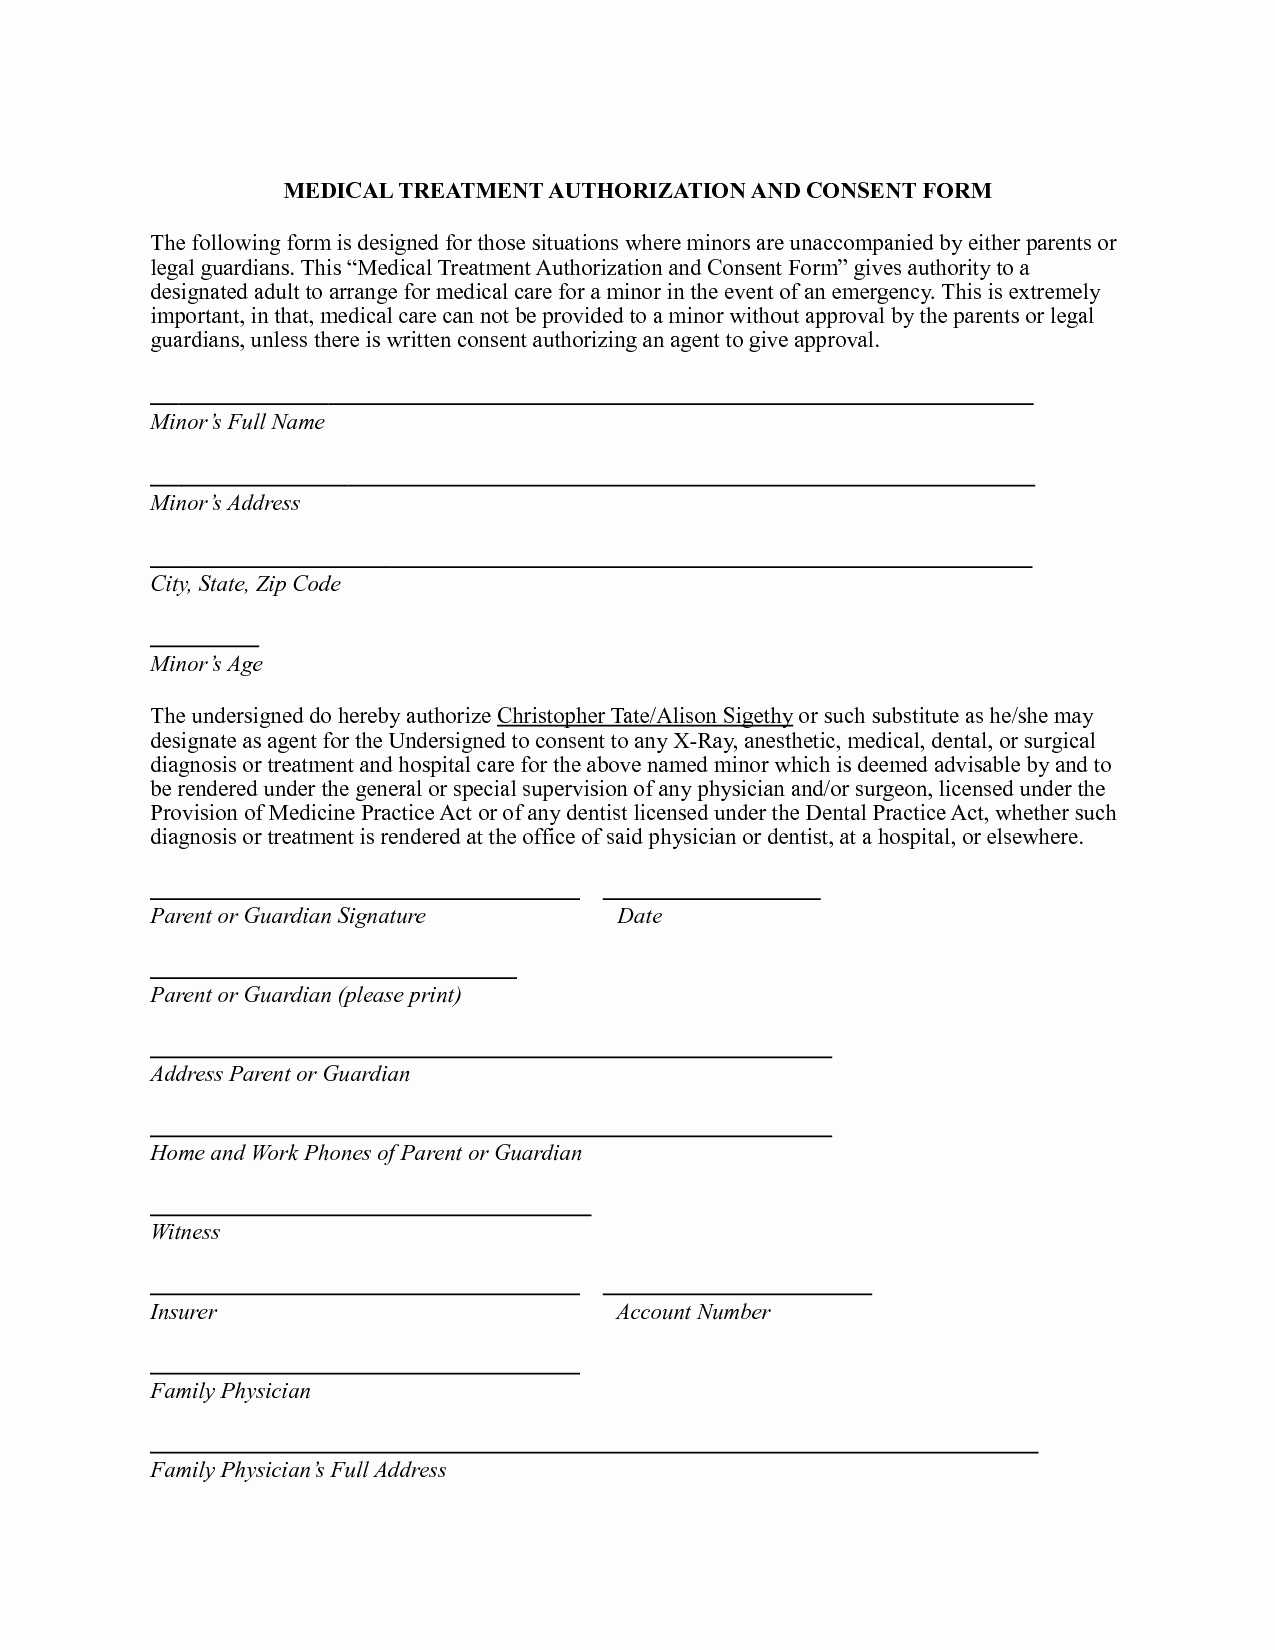 Video Consent form Template Luxury Consent for Medical Treatment form Template 3 – Guatemalago